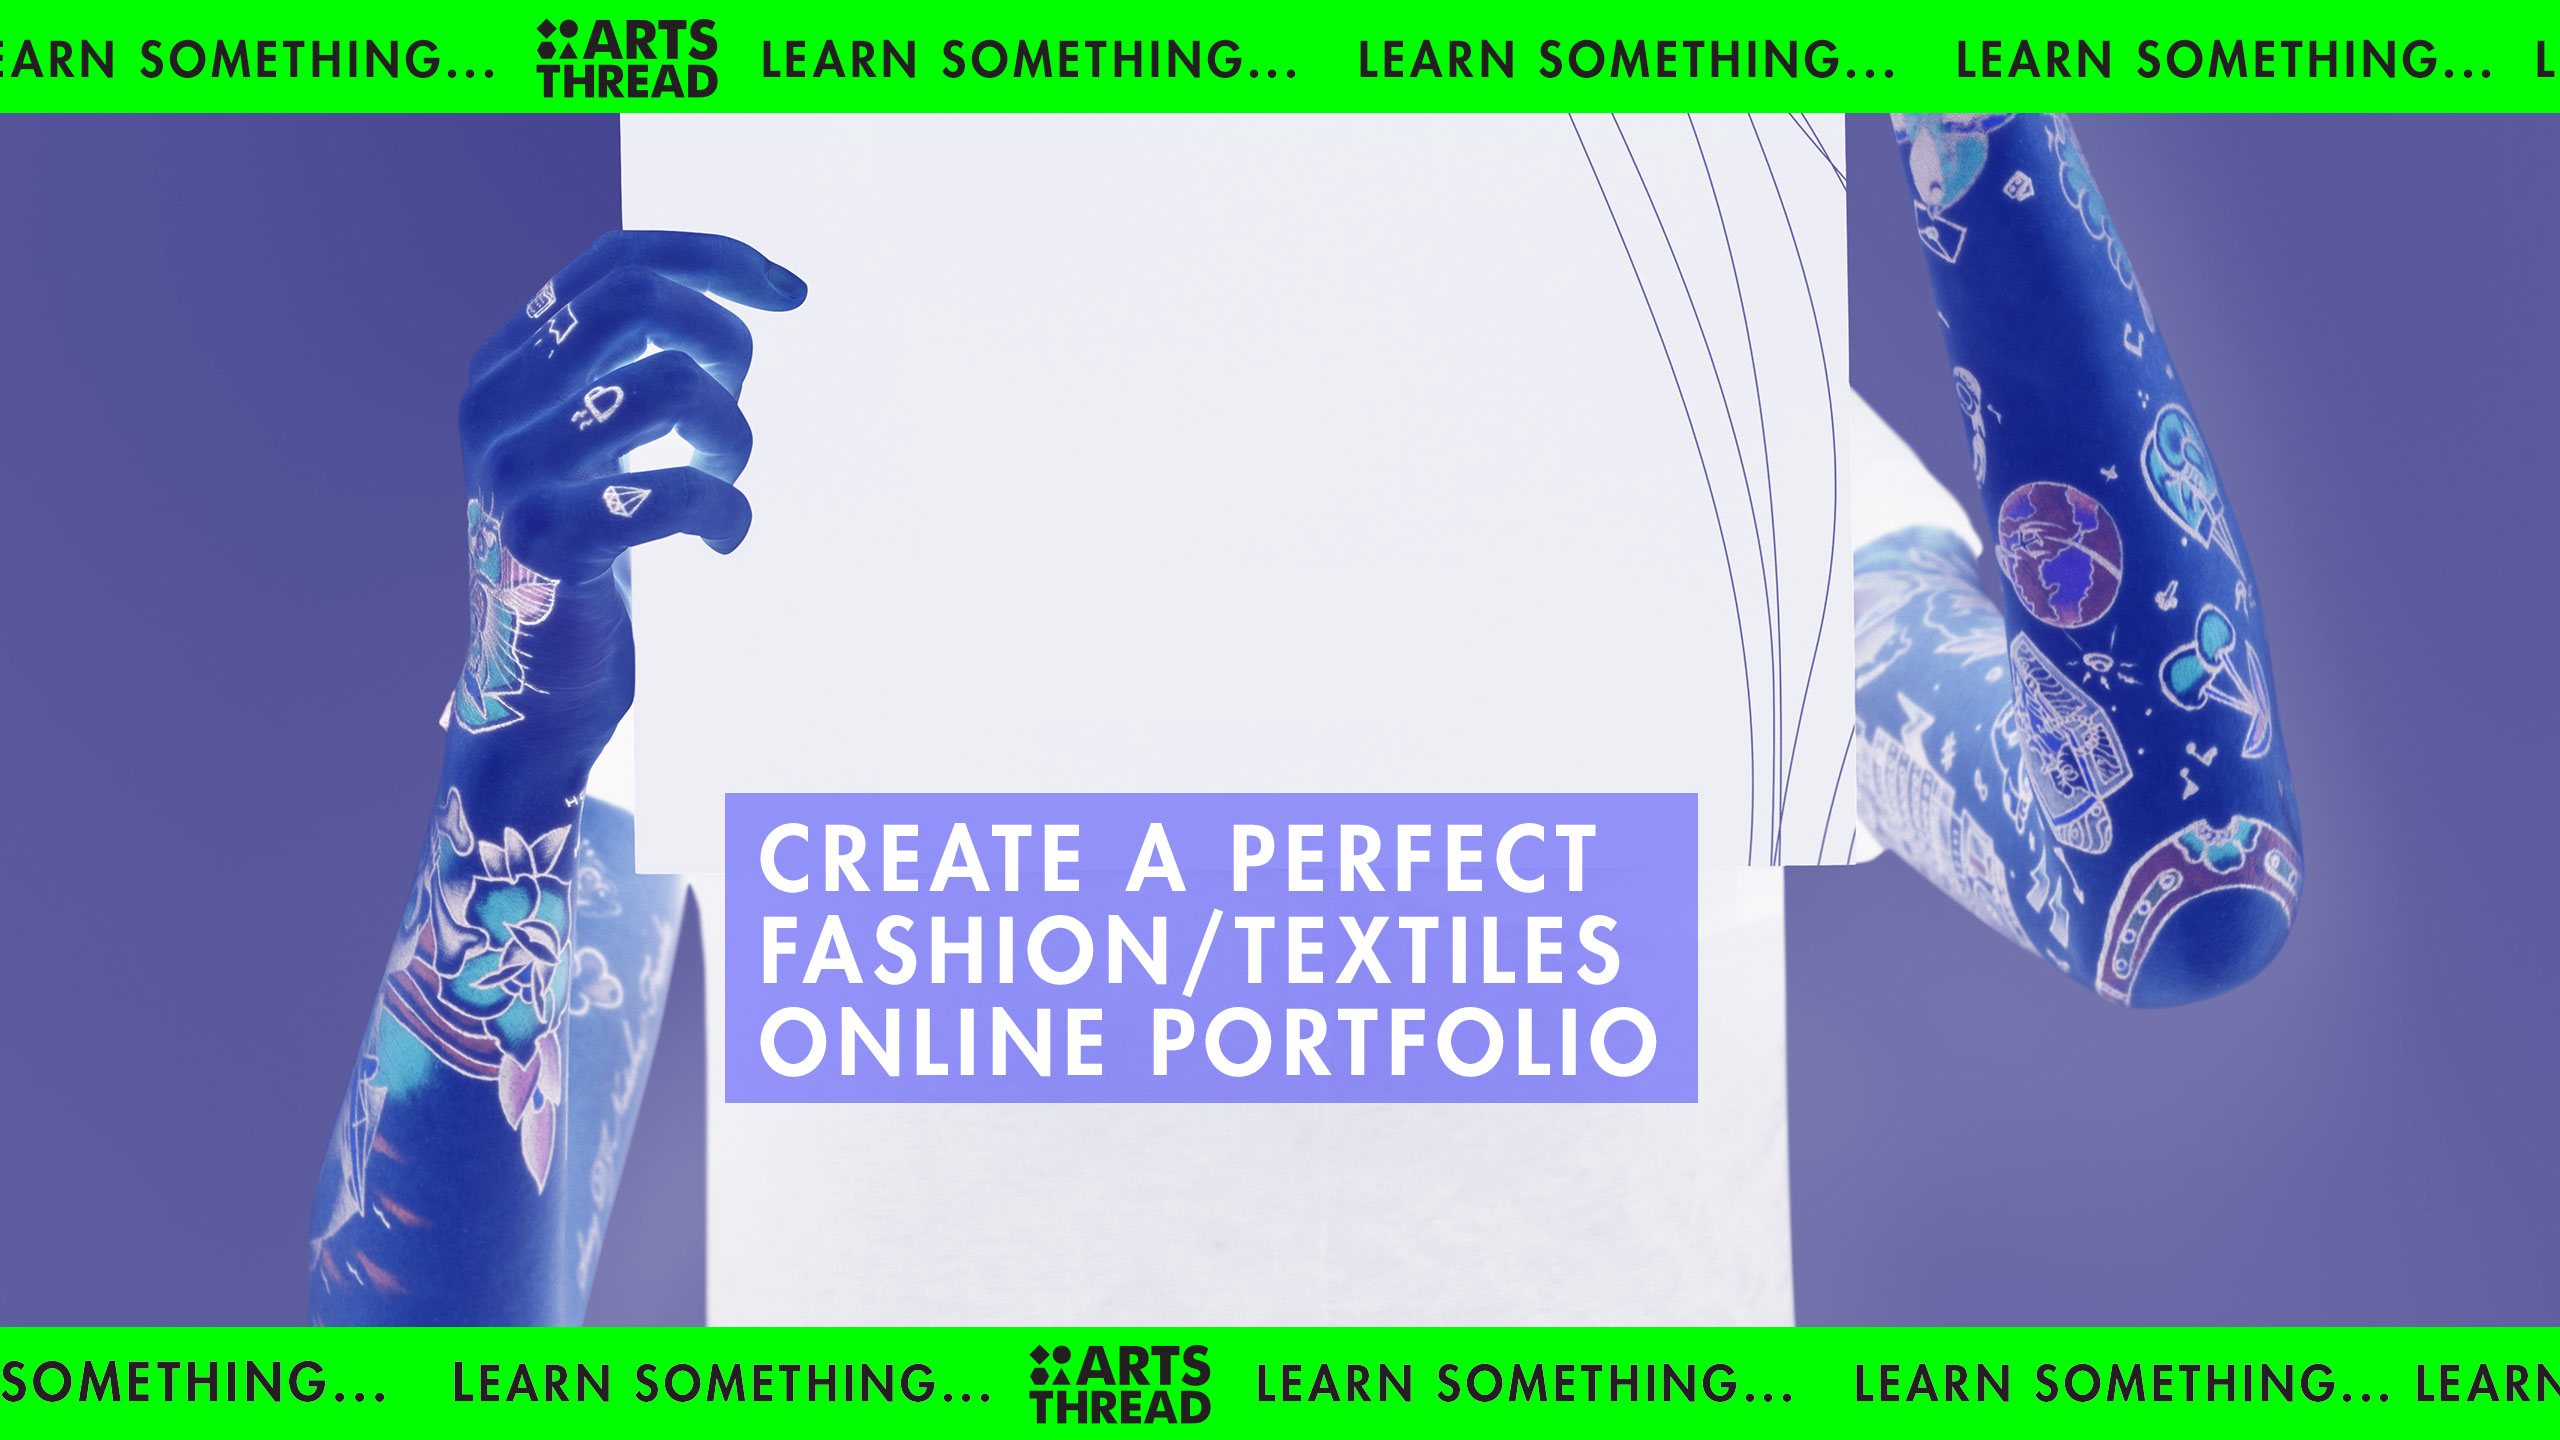 Arts Thread Careers The Perfect Online Fashion Portfolio